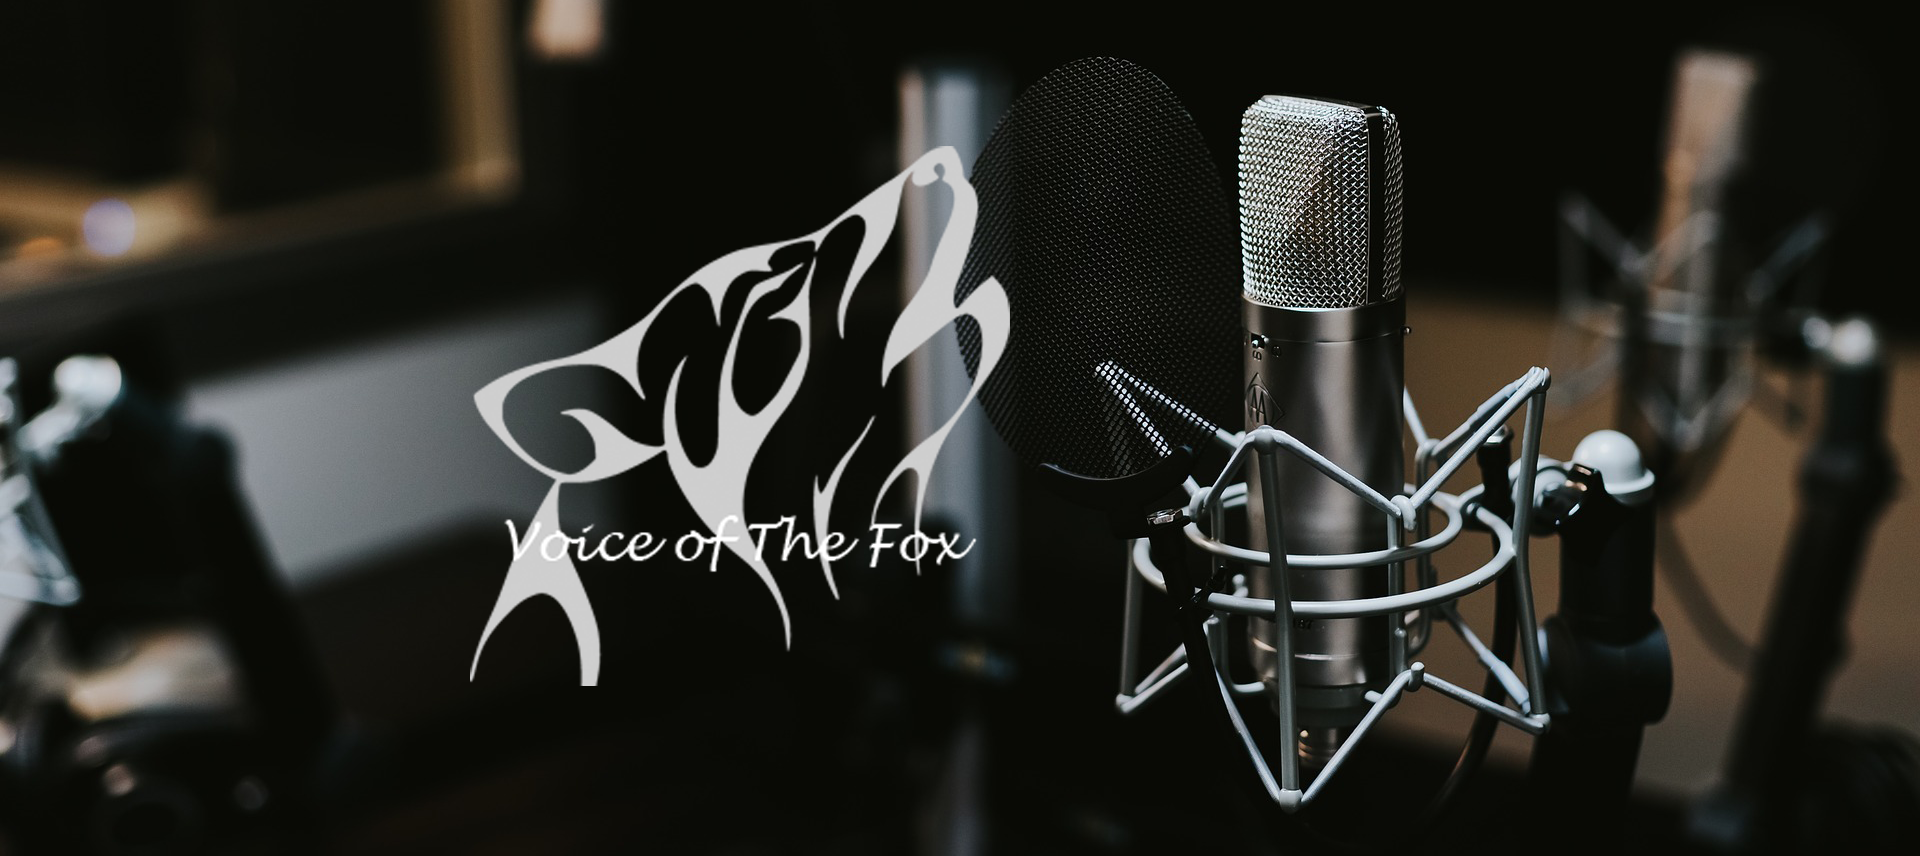 Dave Neal is the Voice of the Fox